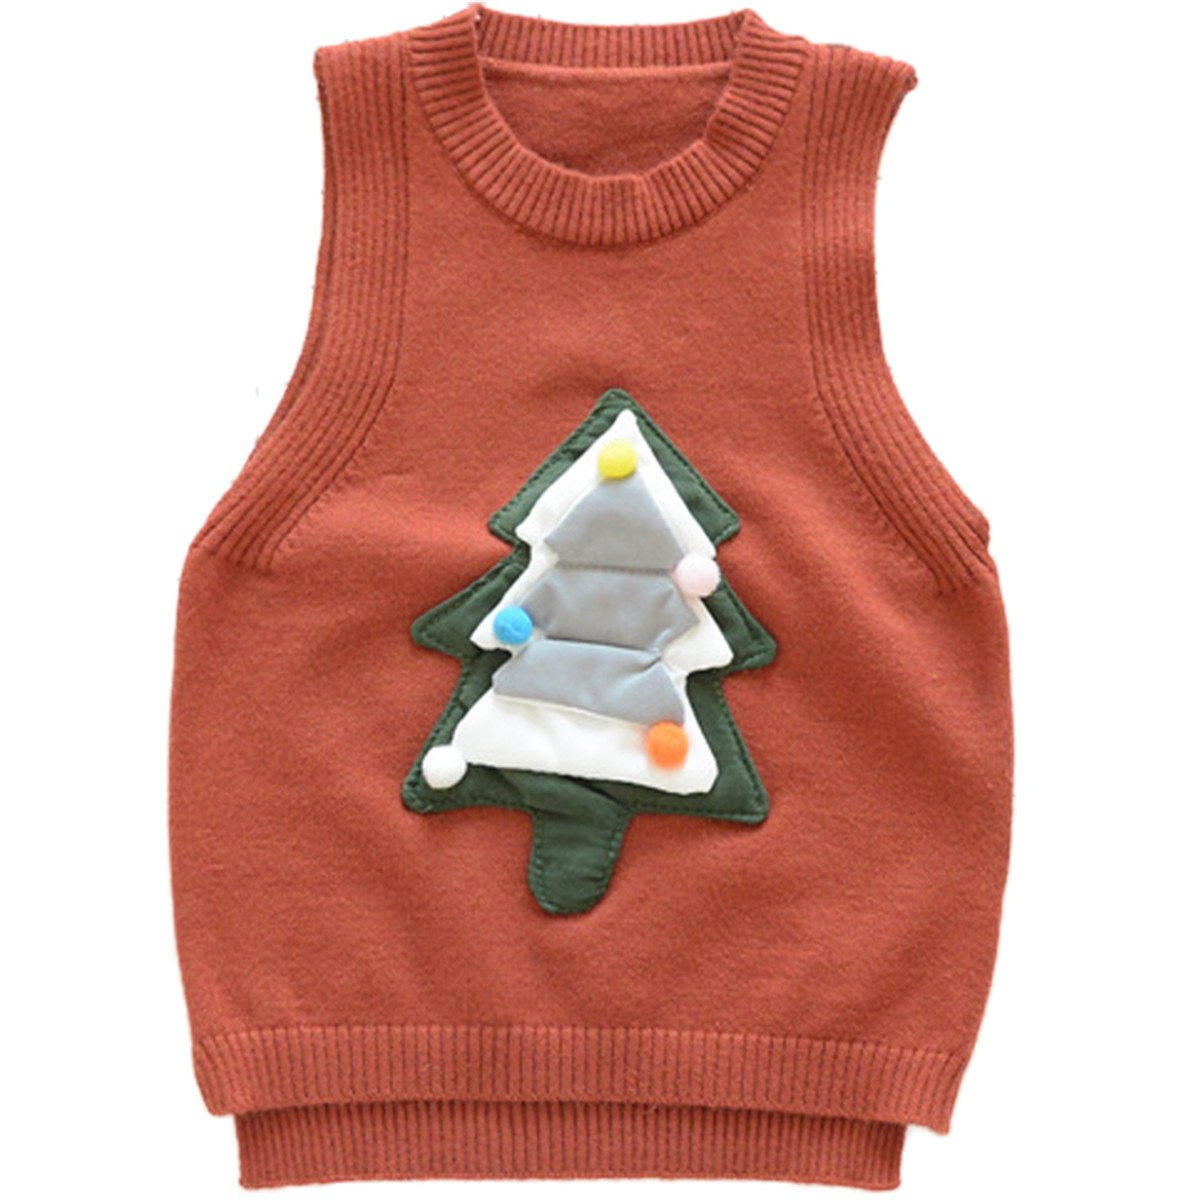 JELEUON Little Girls Sleeveless Knitchristmas Tree Pullover Round Neck Sweater Vest